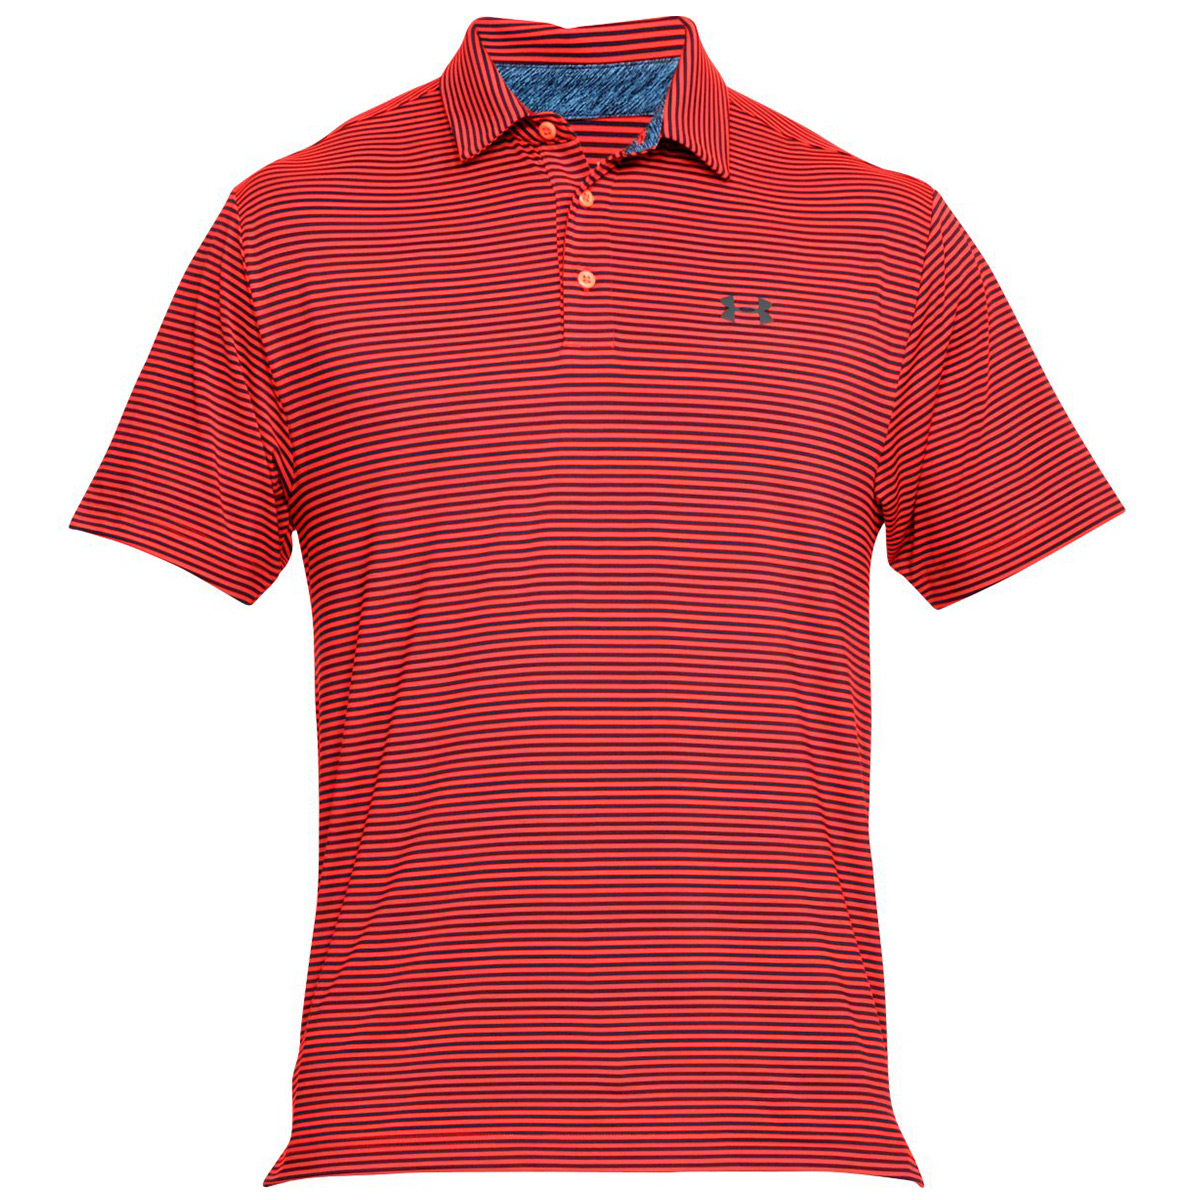 Under-Armour-Mens-UA-Playoff-Performance-Golf-Polo-Shirt-42-OFF-RRP thumbnail 33